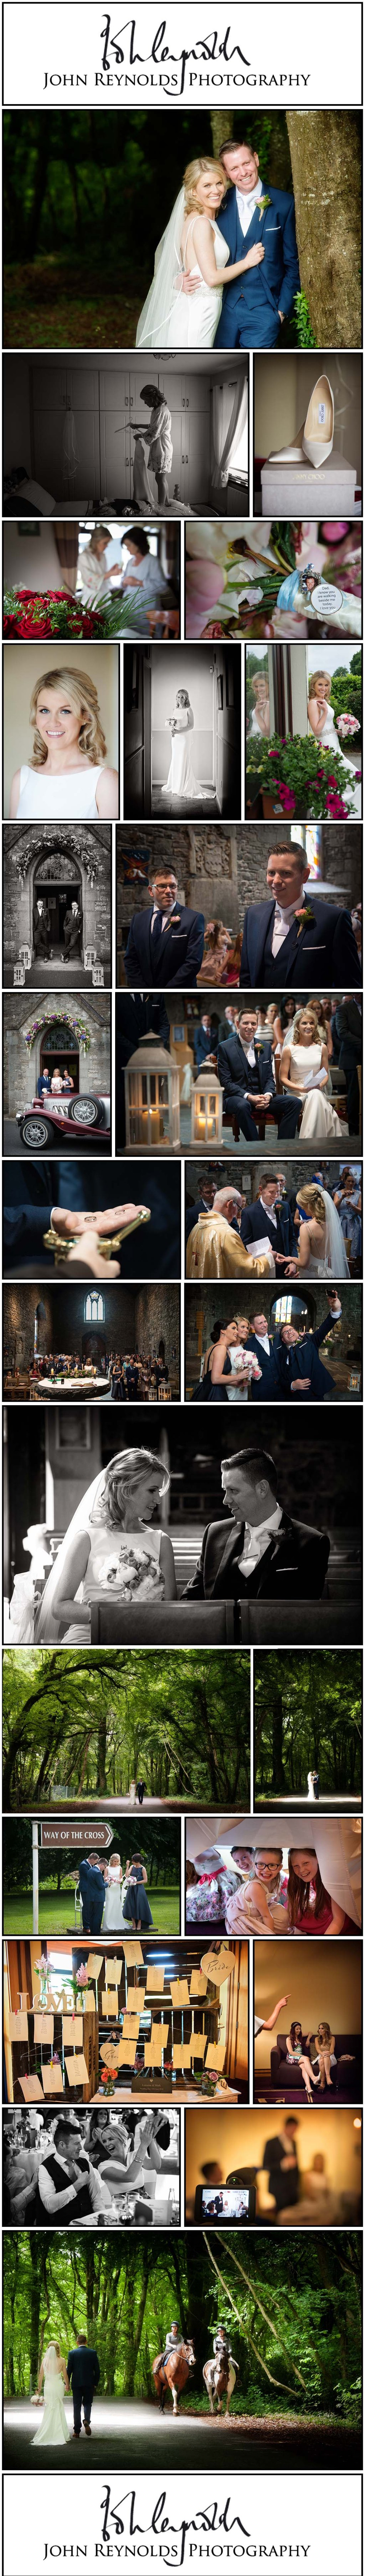 Blog Collage-Lorraine & Mark